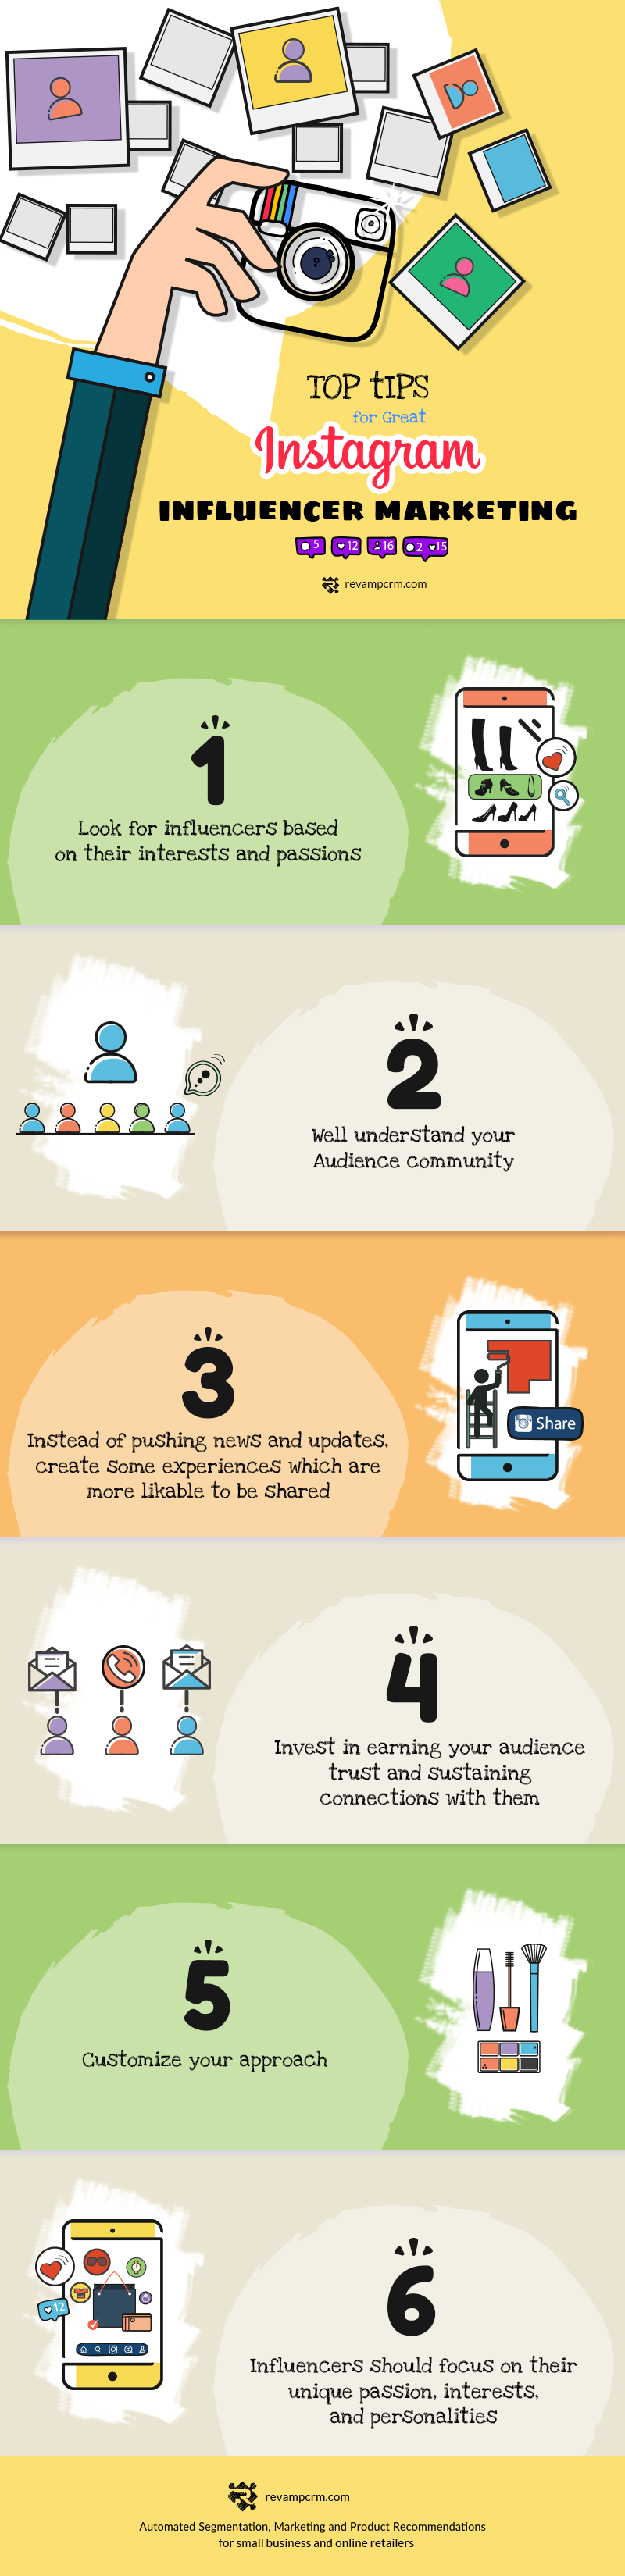 Top-tips-for-great-influencer-marketing-all-points